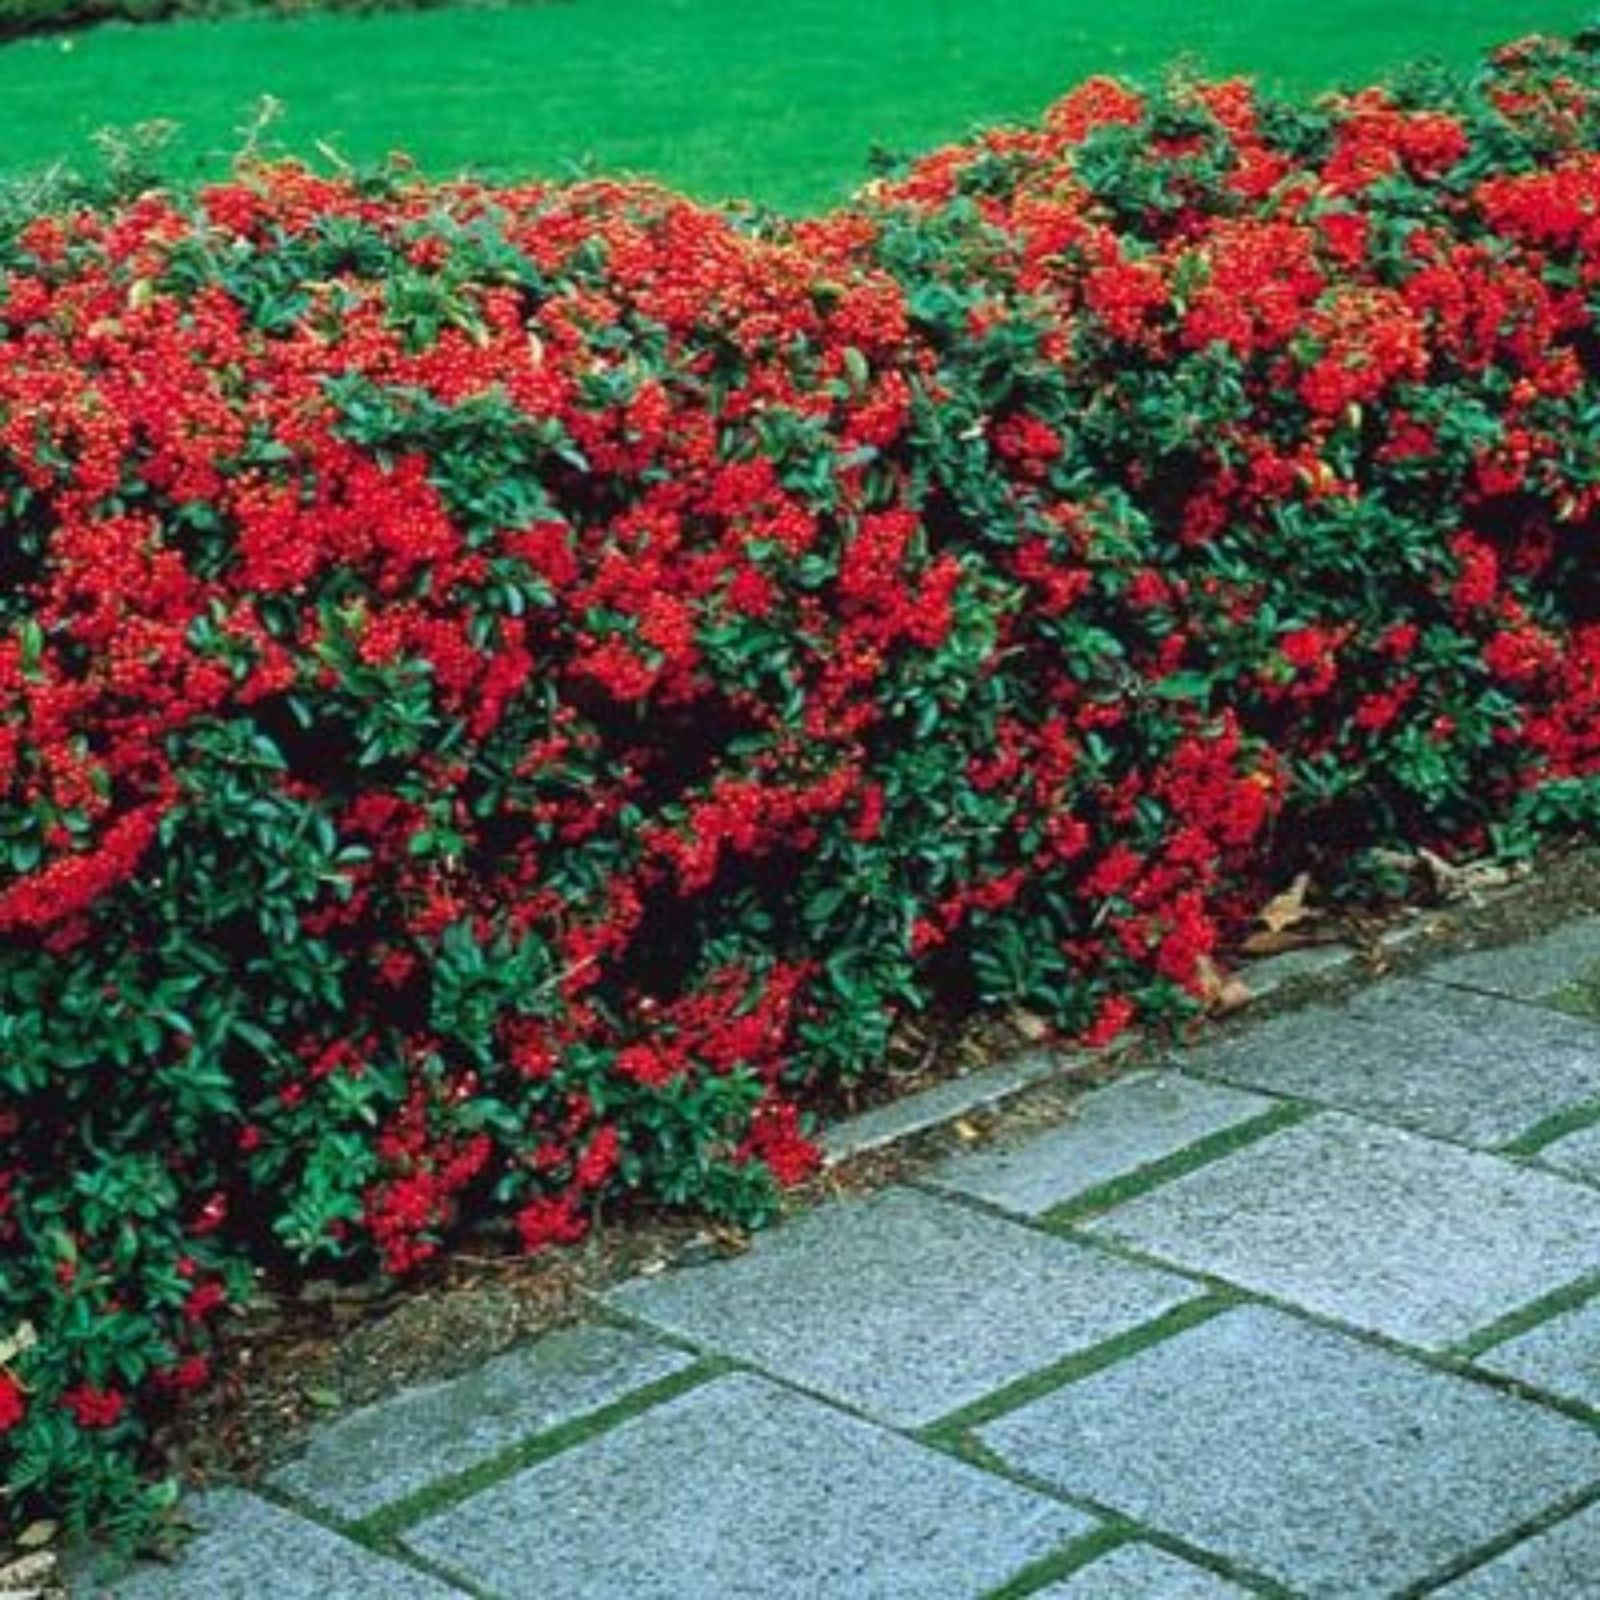 Haie De Pyracantha Pyracantha Shrub Northern Beauty Evergreen Foliage